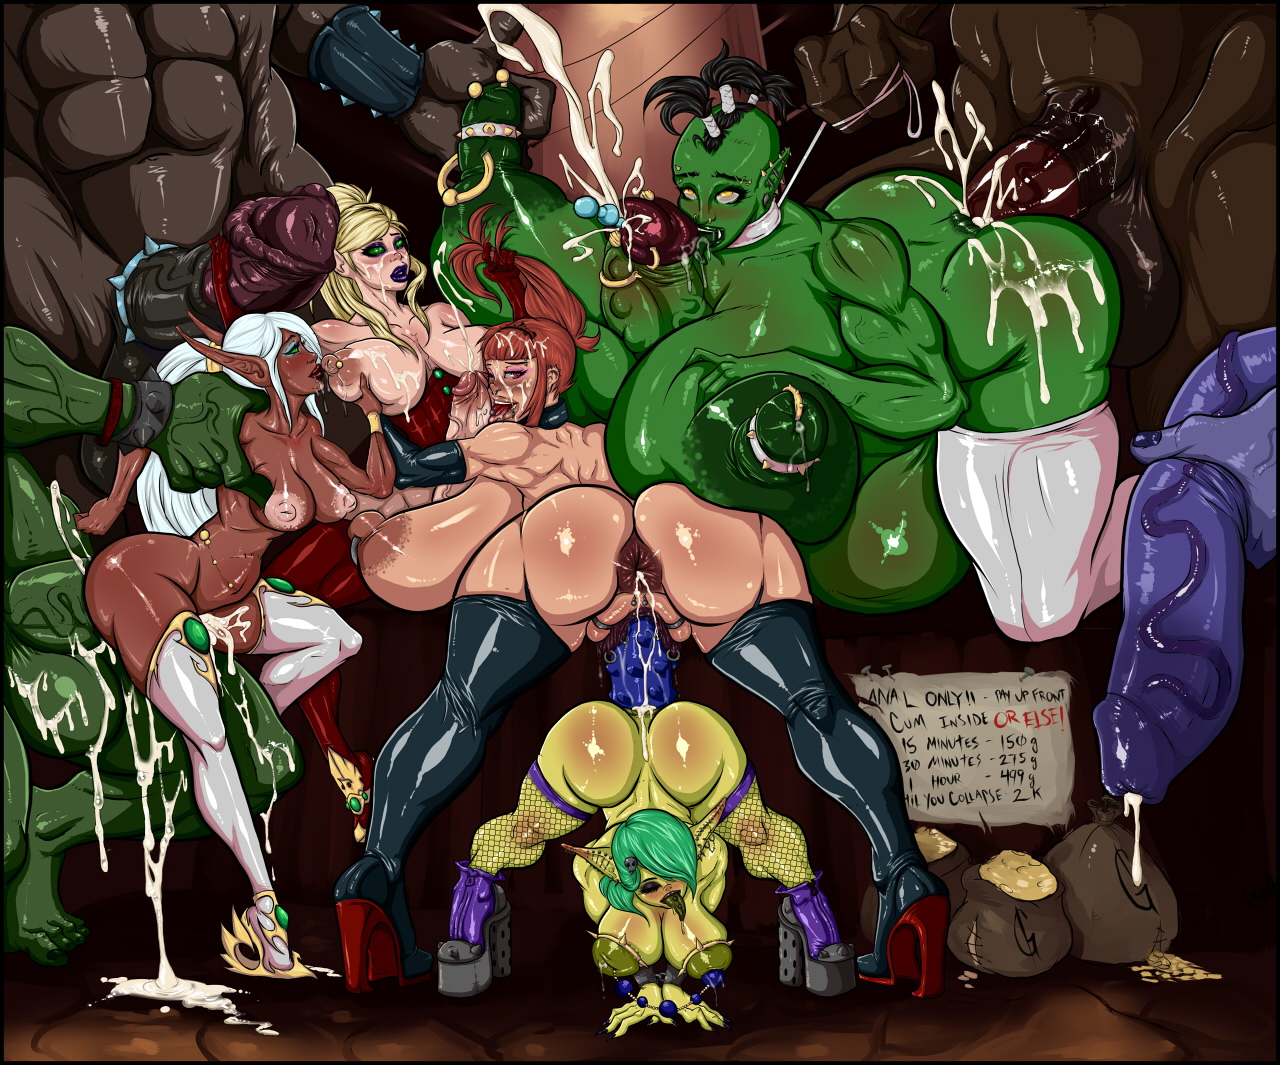 Orc anal world of warcraft porn movies